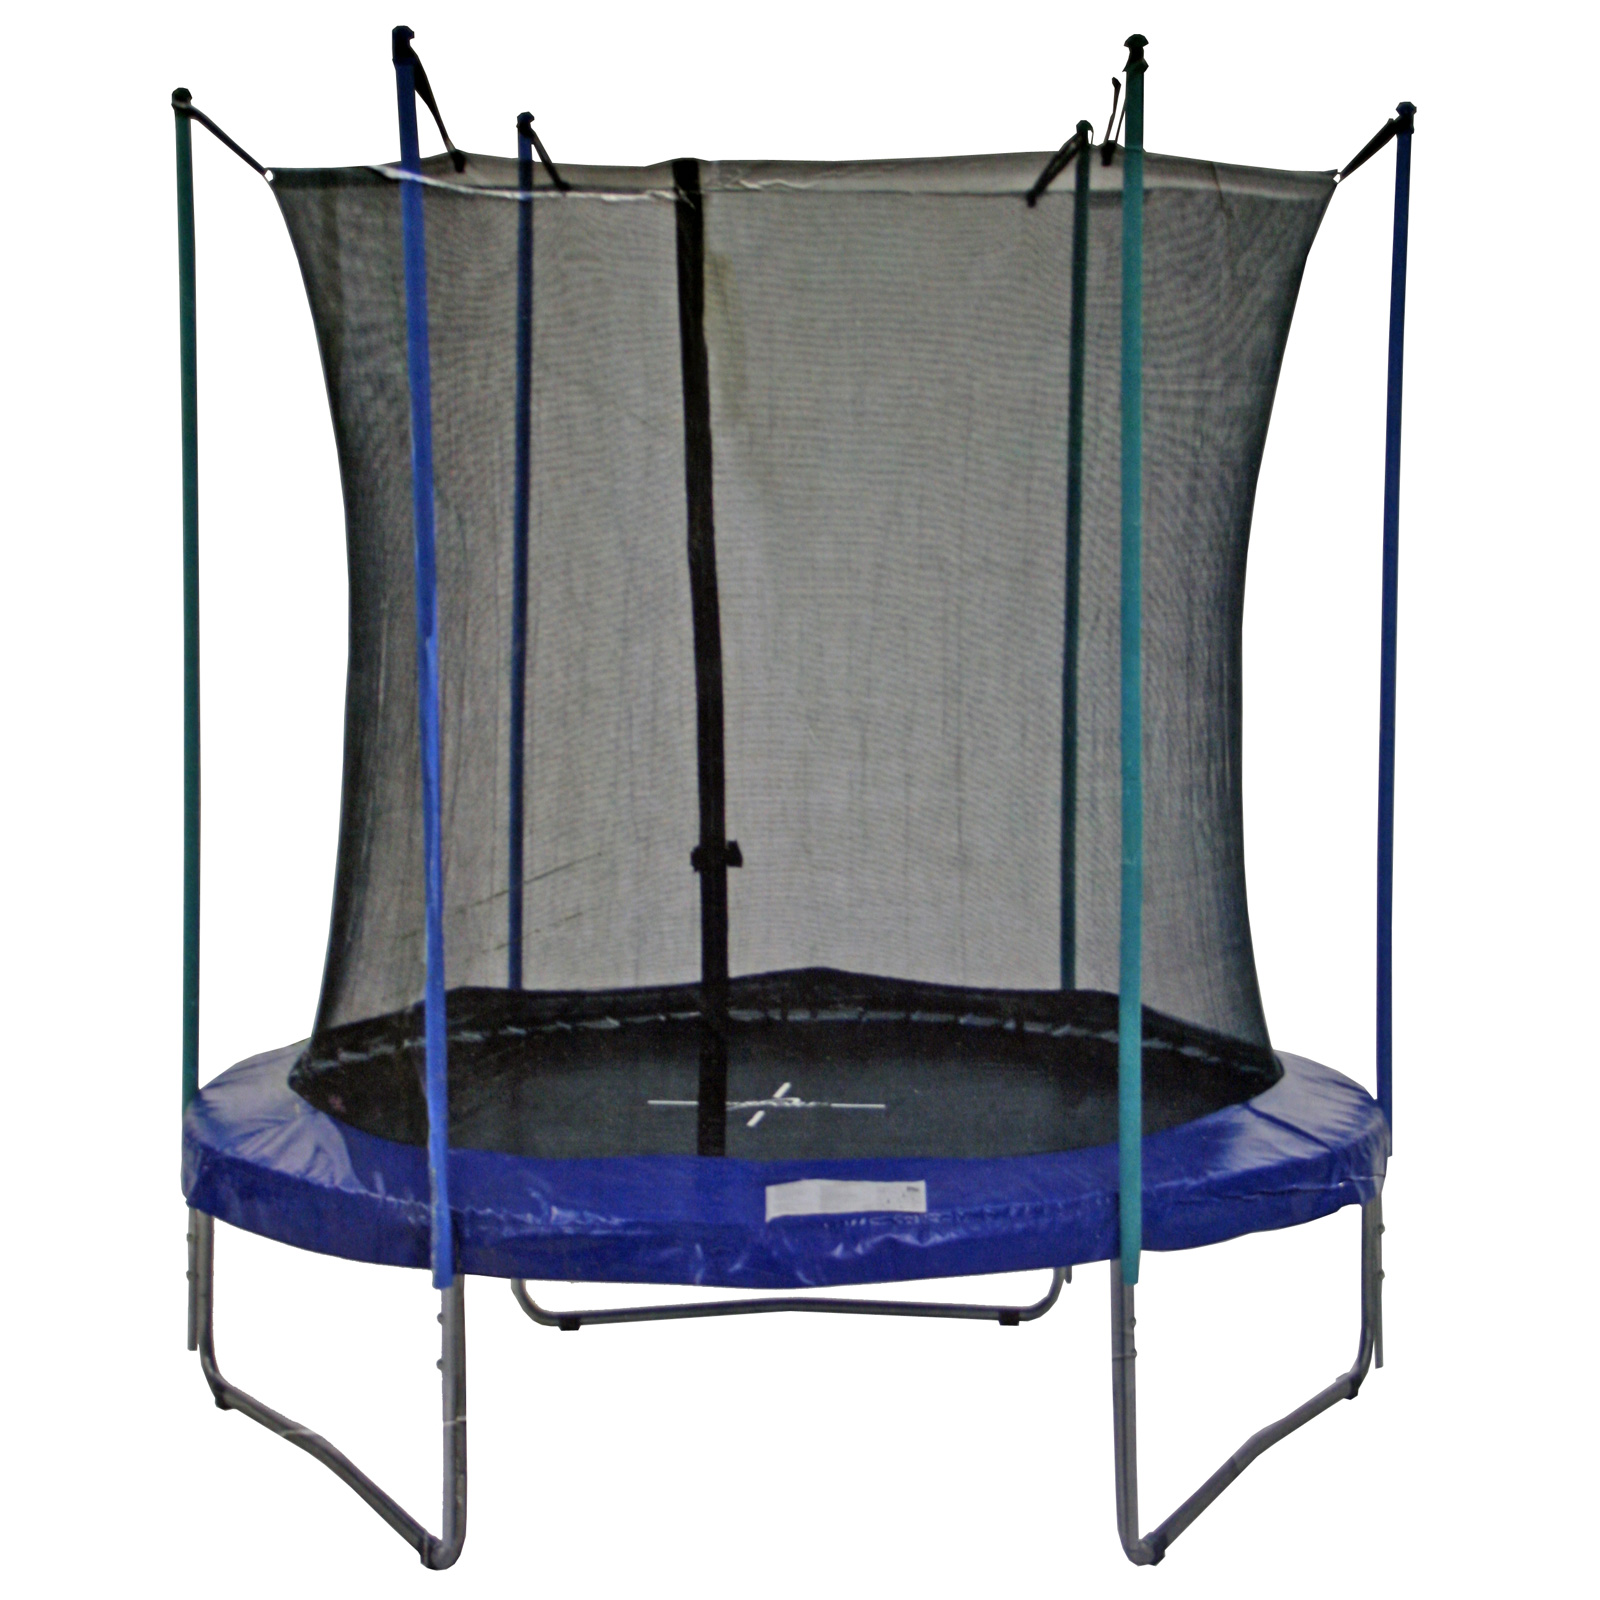 sport trampolin kaufen turn trampoline im sport thieme. Black Bedroom Furniture Sets. Home Design Ideas